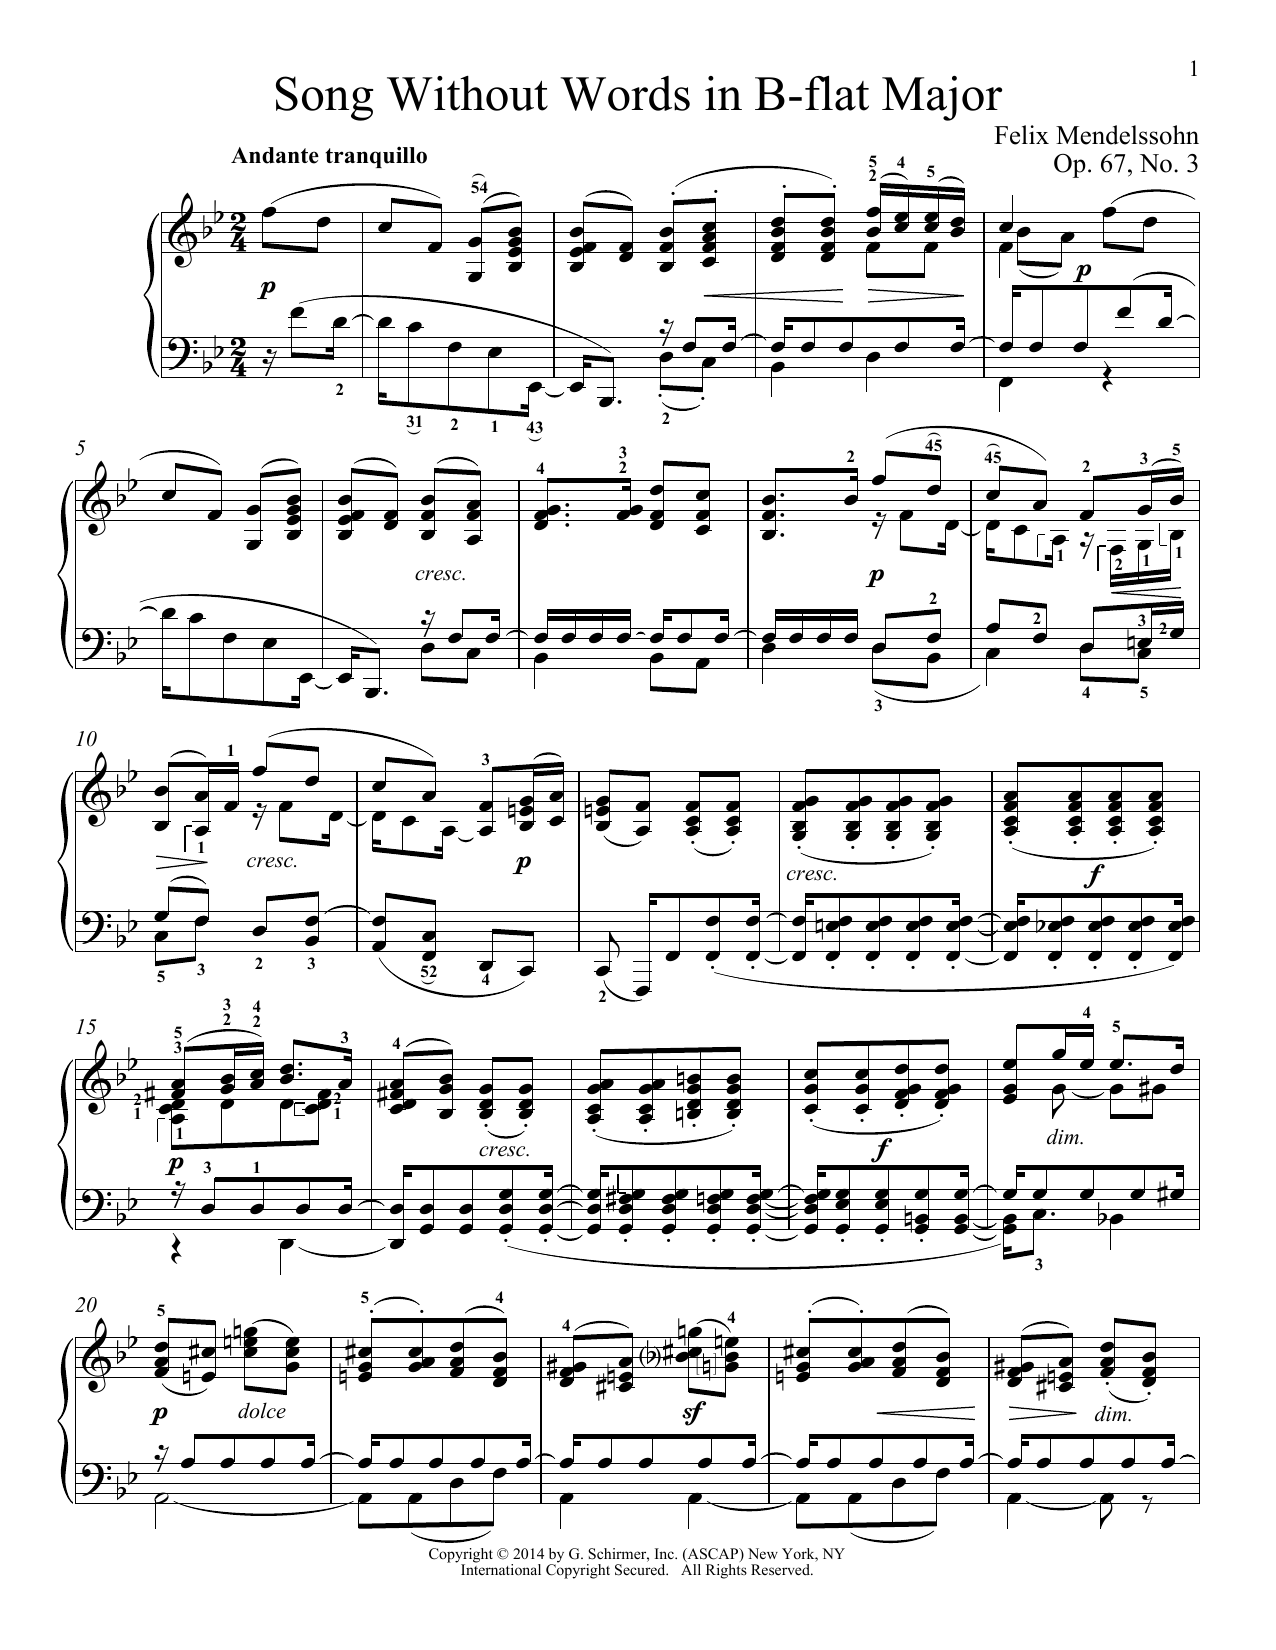 Download Felix Mendelssohn 'Song Without Words In B-Flat Major, Op. 67, No. 3' Digital Sheet Music Notes & Chords and start playing in minutes